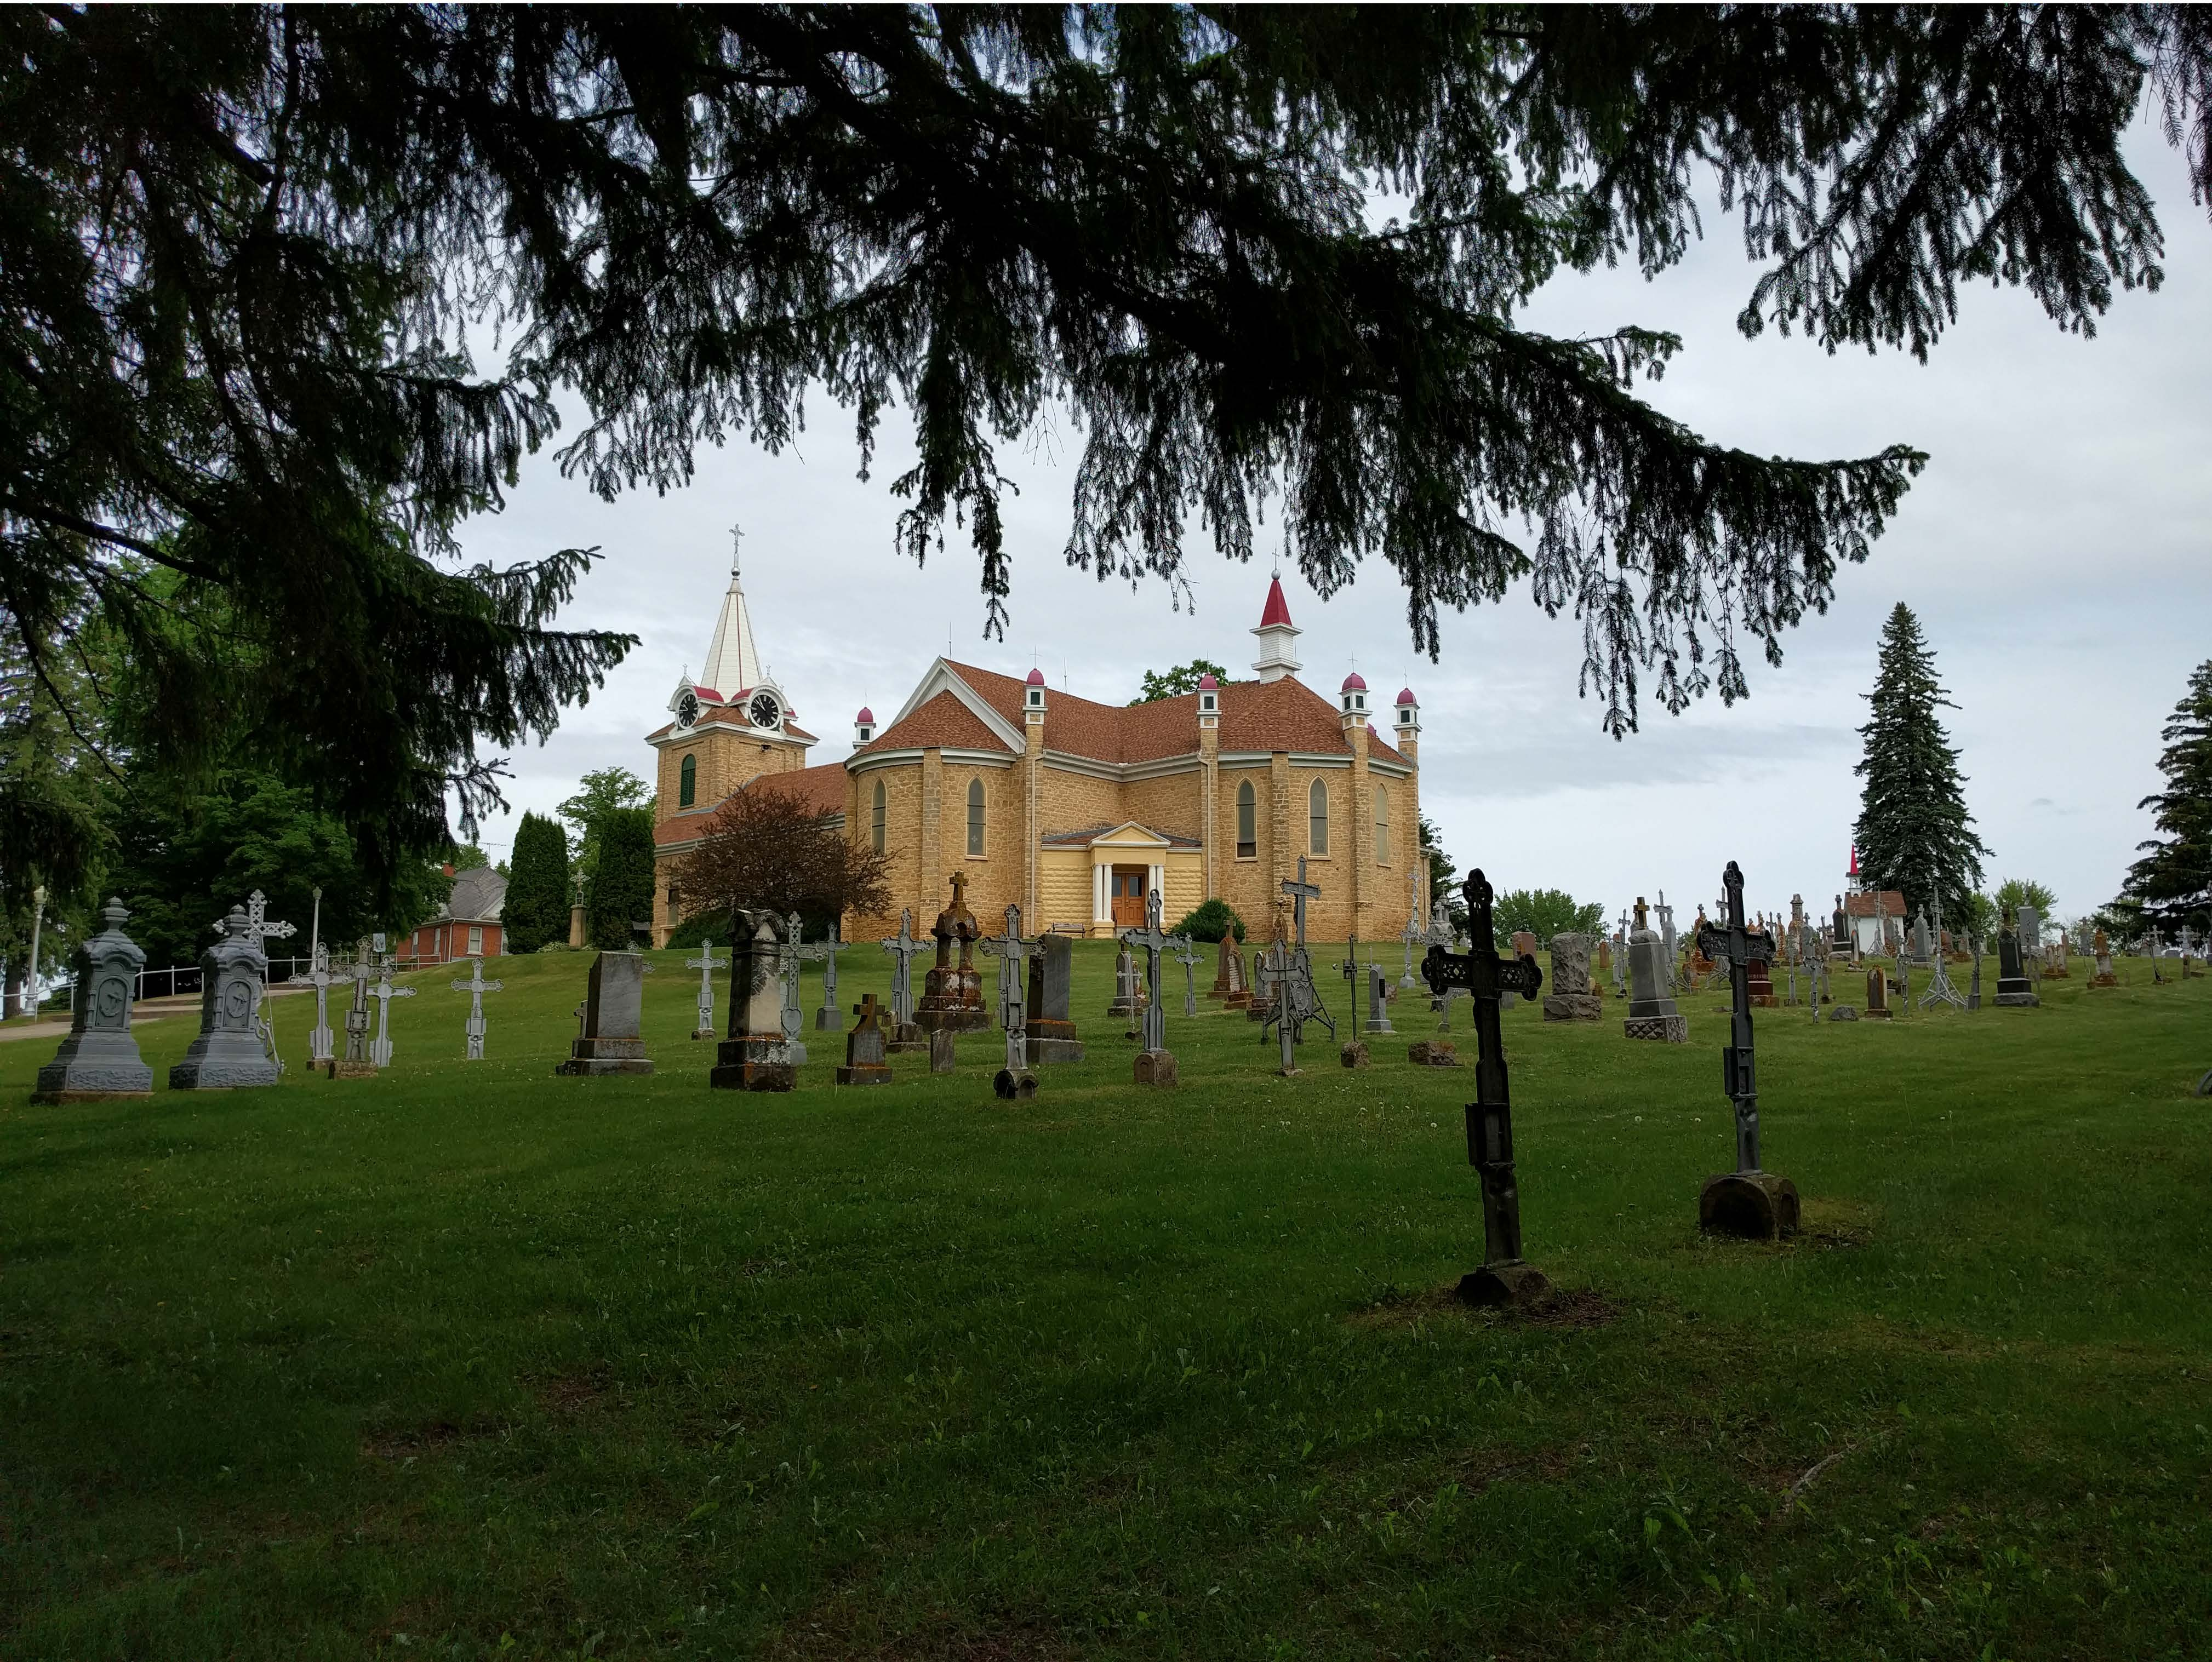 St. Wenceslaus Church & cemetery